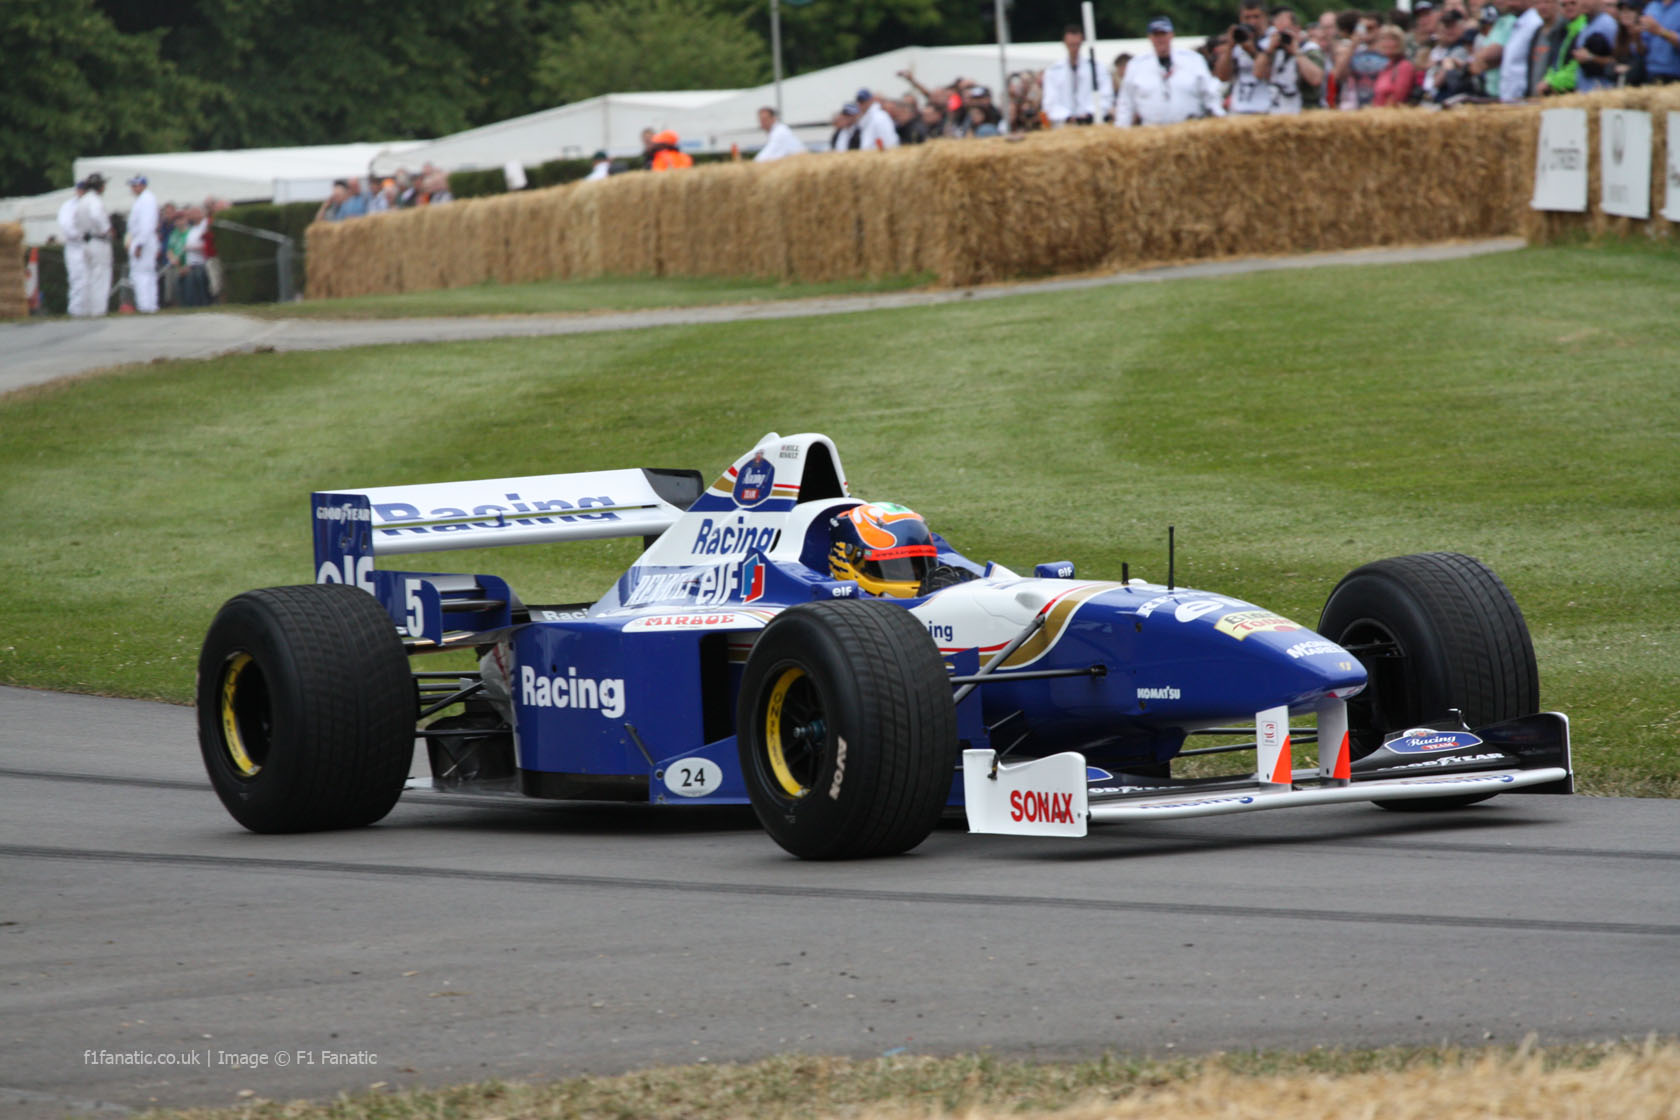 Williams FW18 (3), Goodwood Festival of Speed, 2014